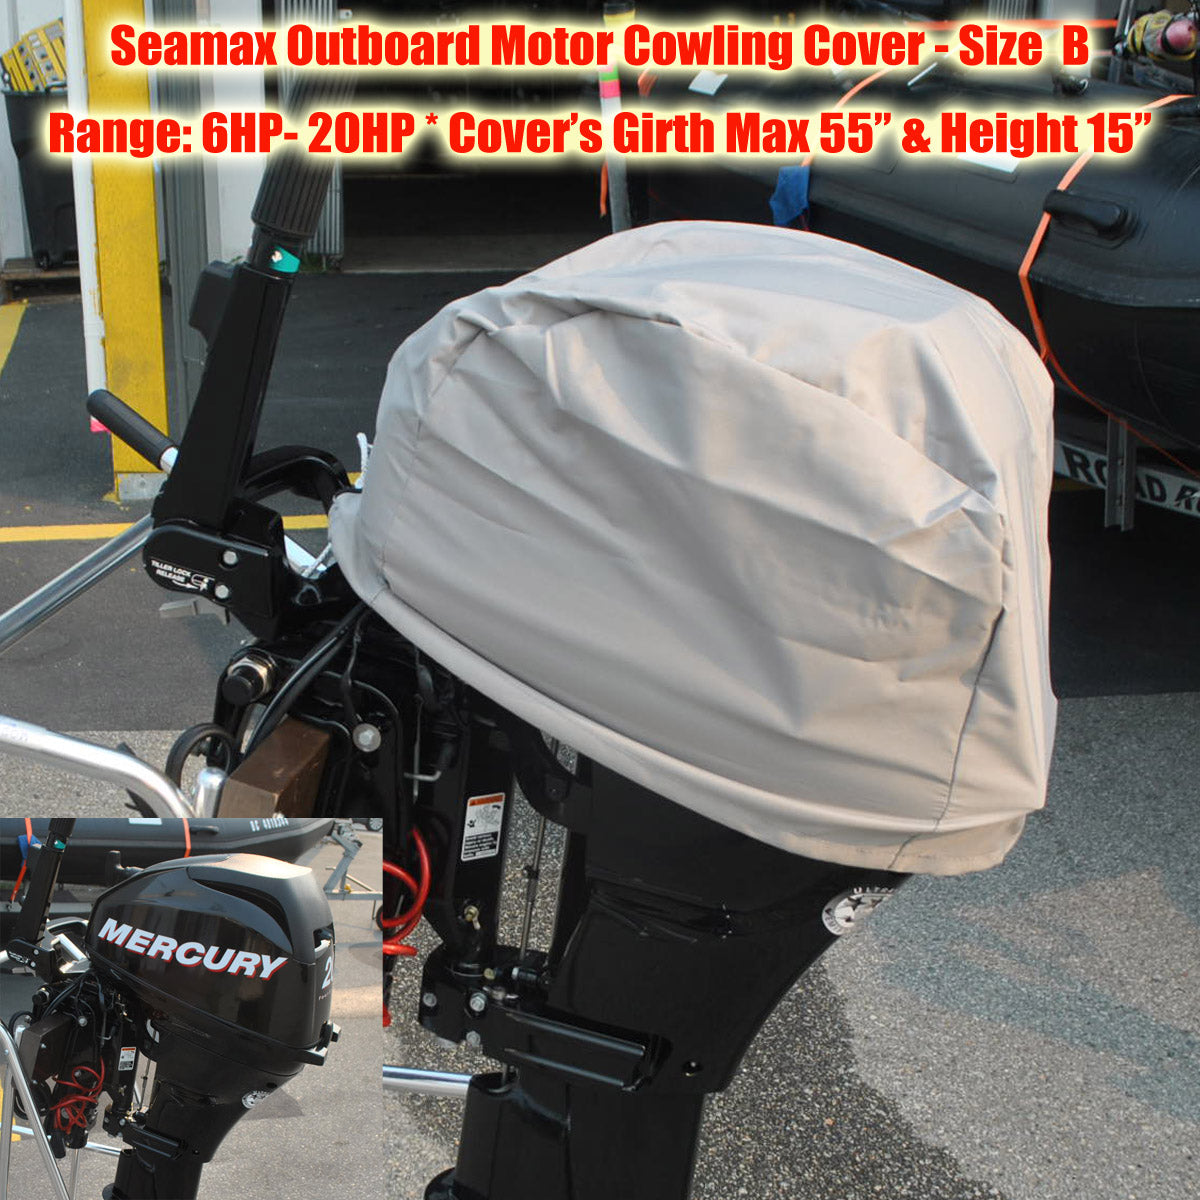 ... Outboard Motor Cowling Cover – 600D Polyester Coated PU Water Resident  - Seamax Marine ...